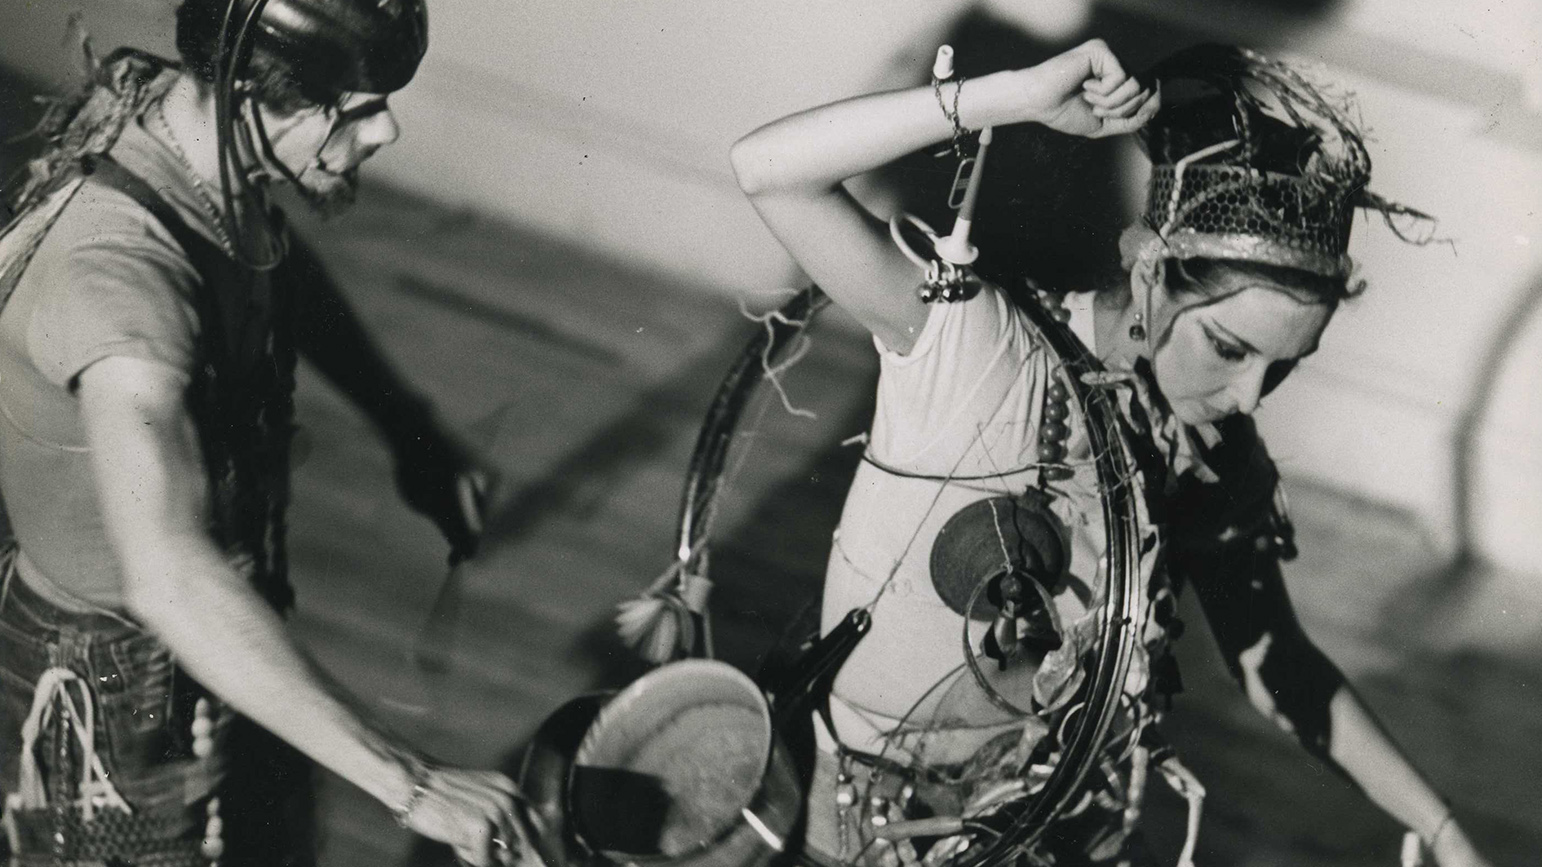 Black-and-white image of two performers with sound making devices attached to themselves